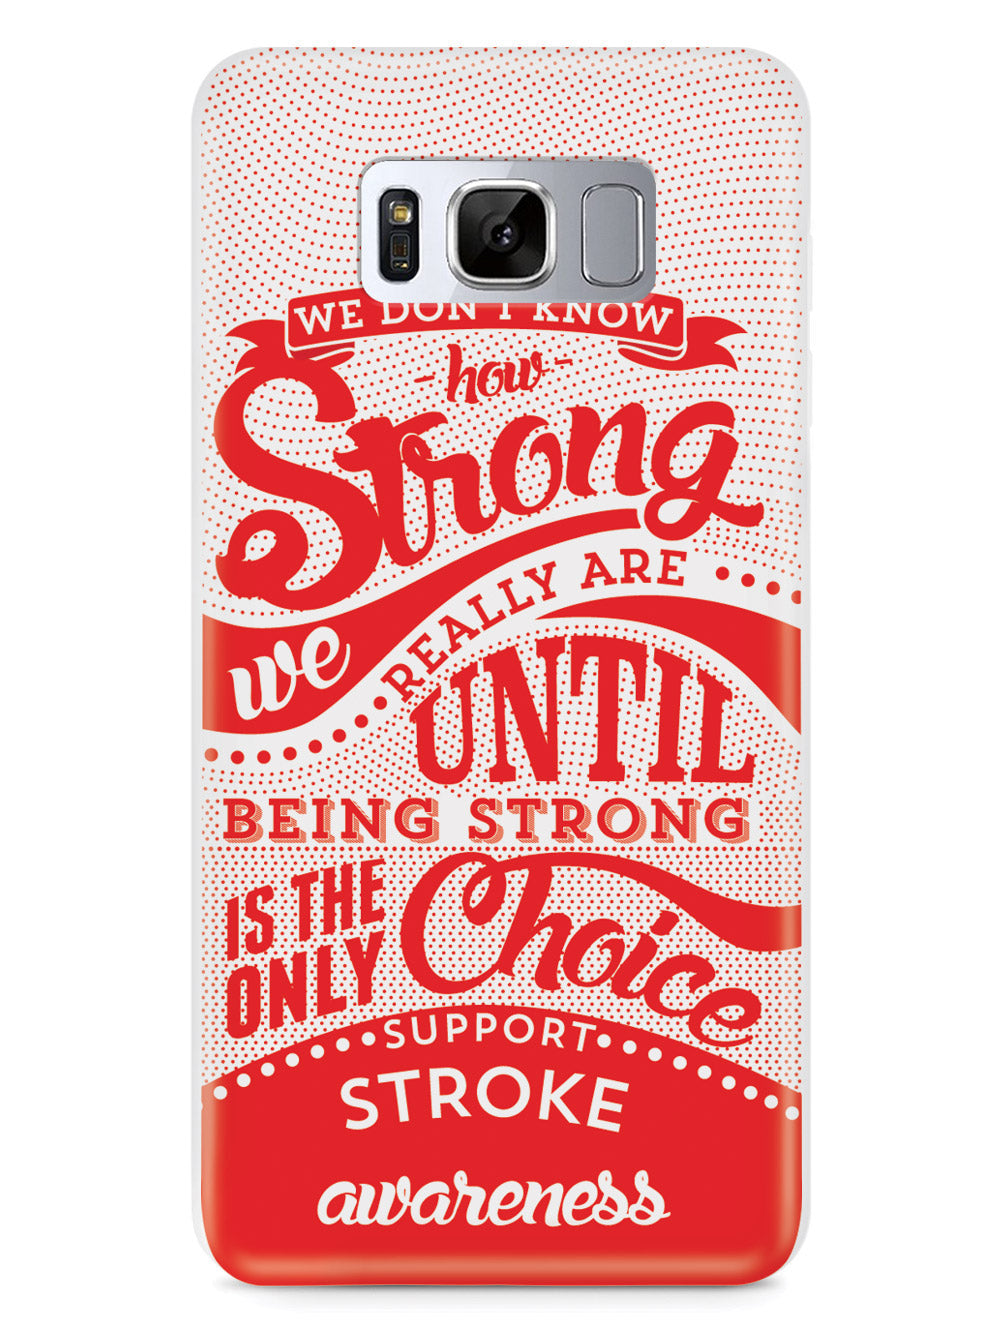 Stroke Awareness - How Strong Case